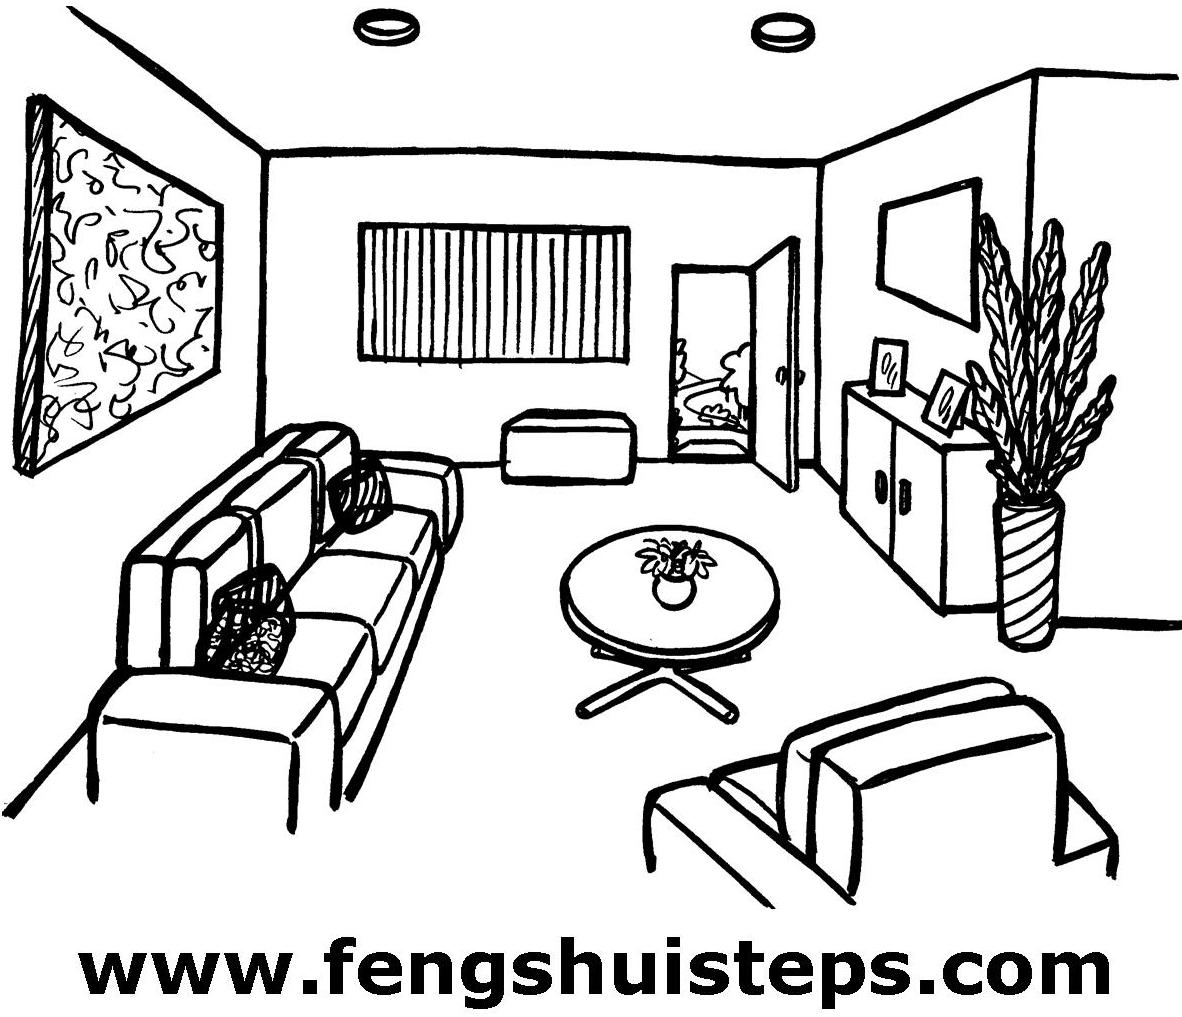 Feng Shui Lounge Room Fig 1 Ideal Layout